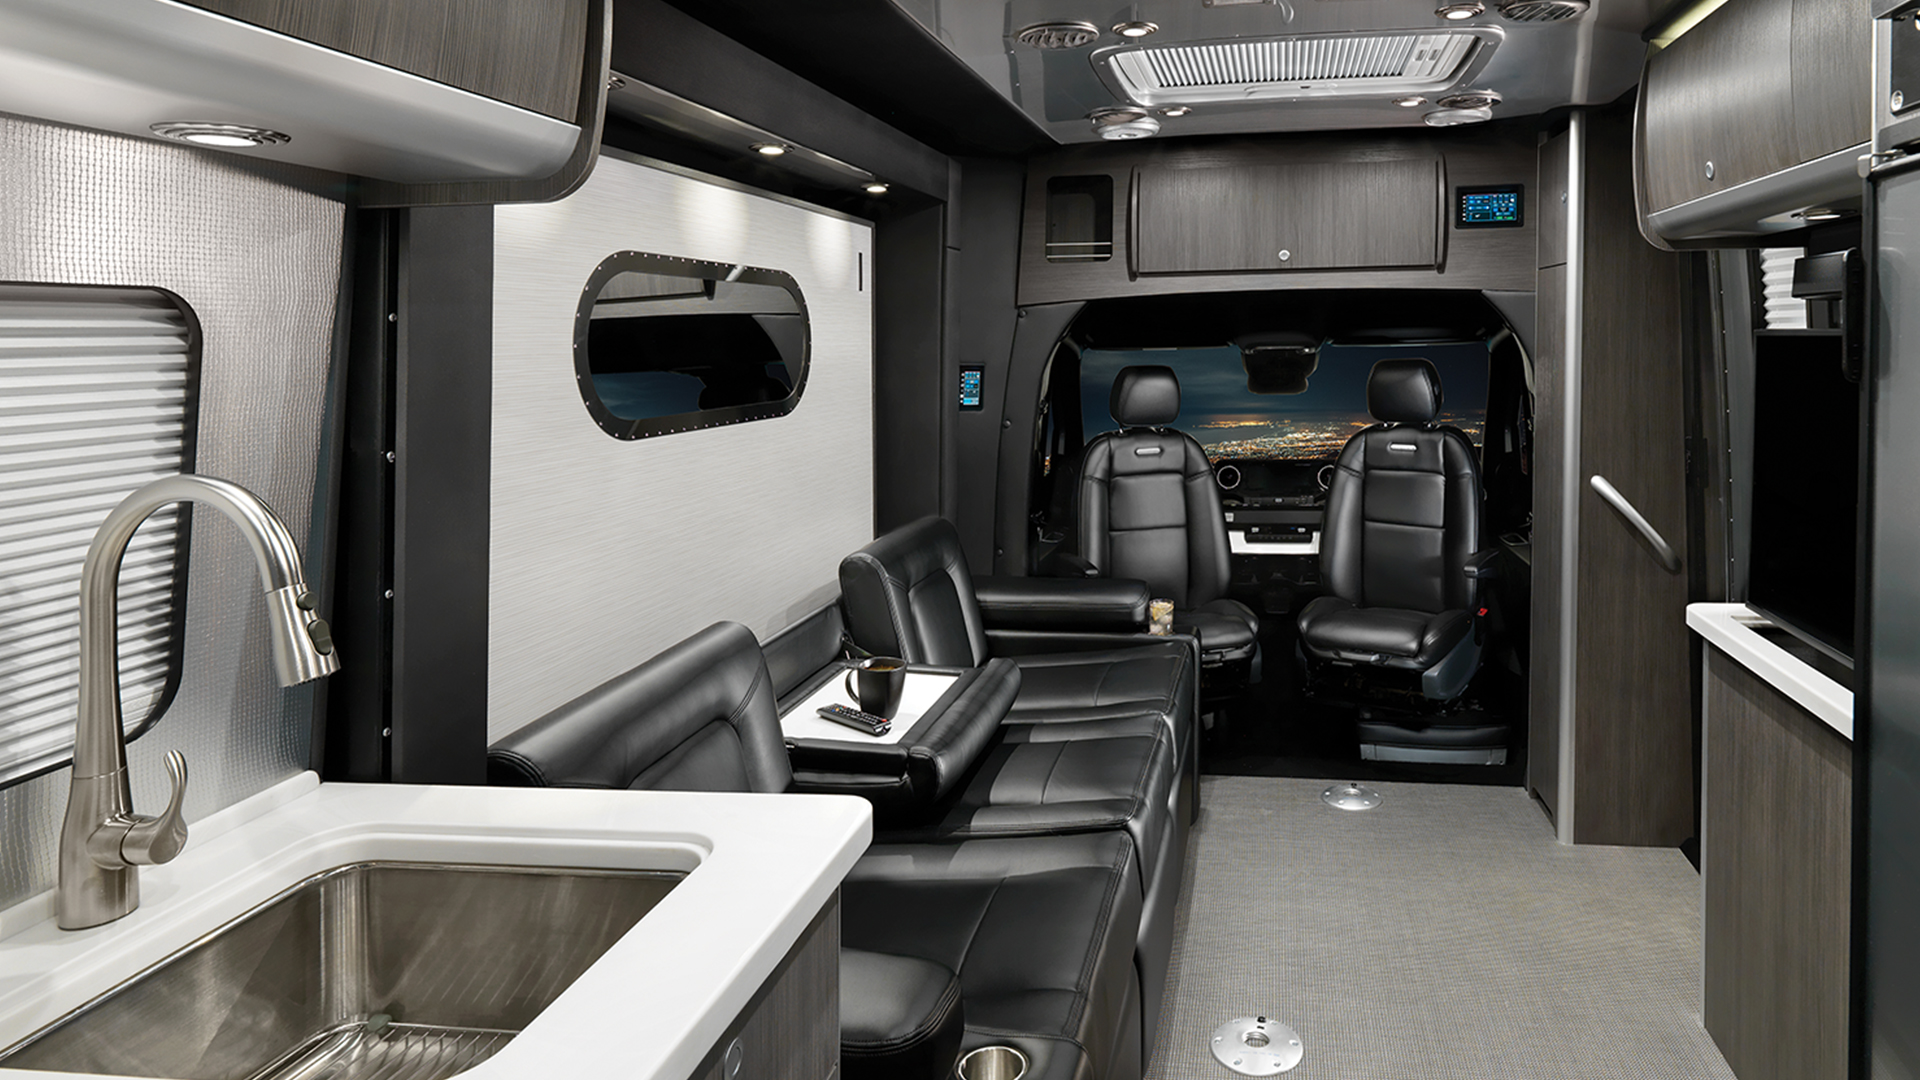 Airstream-Atlas-Interior-Swivel-Chairs